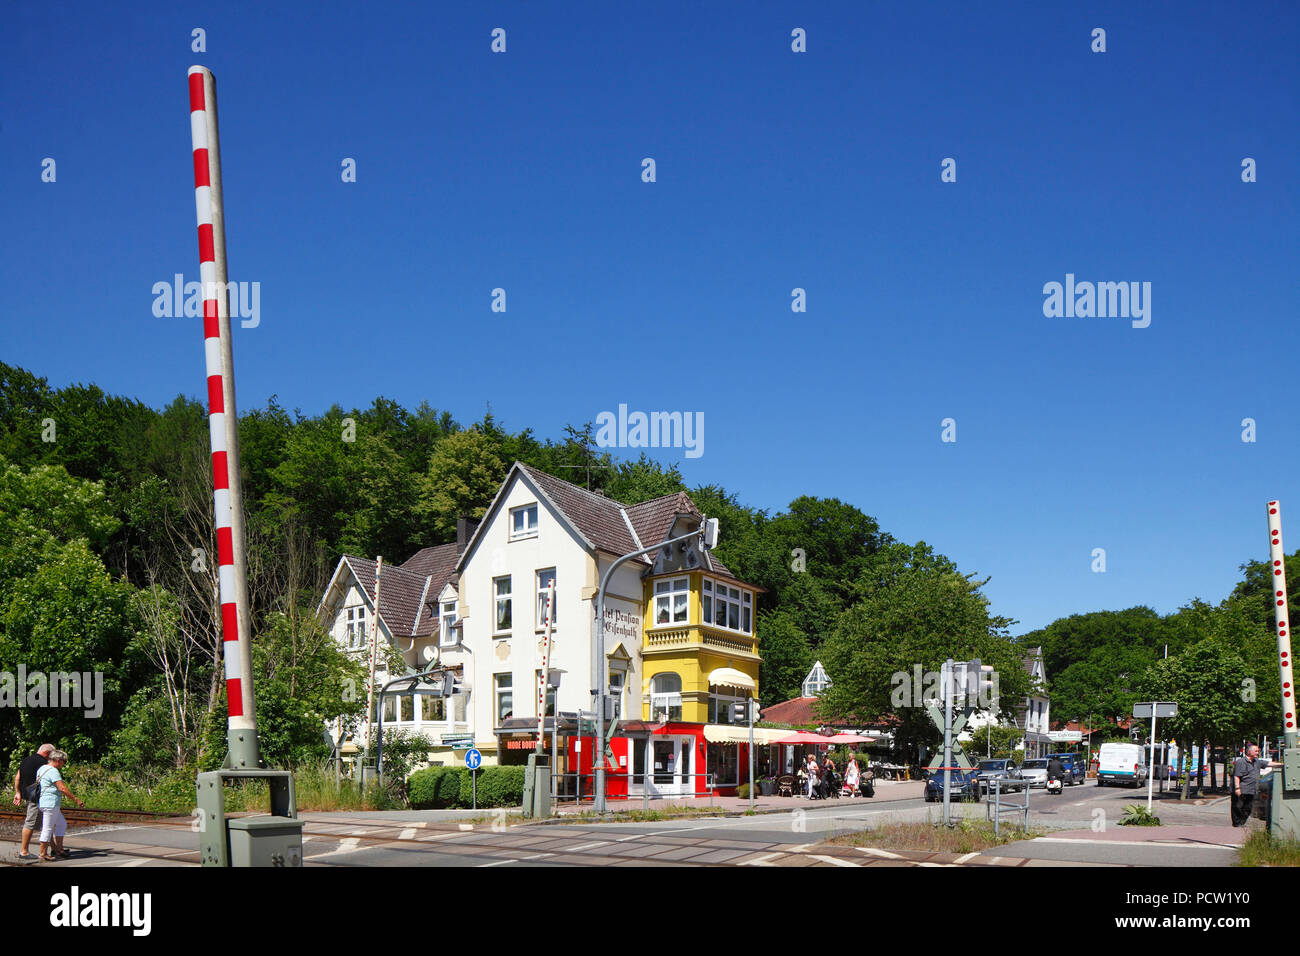 Limited railroad crossing with open gate, Hotel-Pension Elisenhuth in the Hindenburgallee, Bad Malente-Gremsmühlen, Malente, Schleswig-Holstein, Germany, Europe - Stock Image